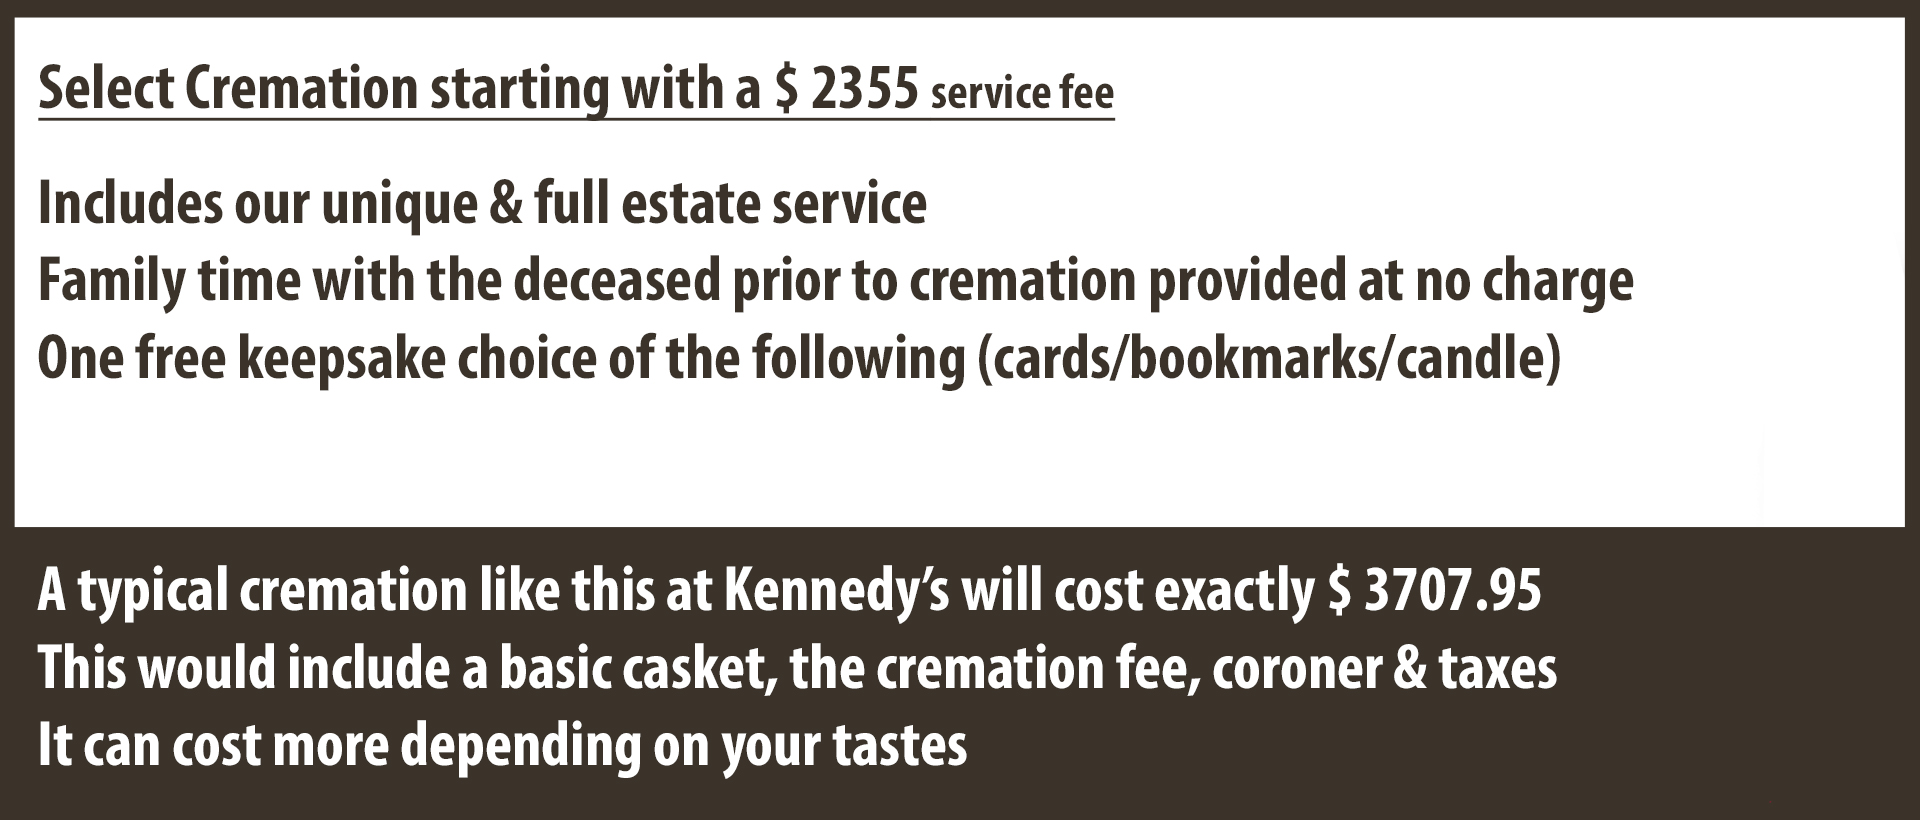 Cremation and funeral services in Essex Ontario. Serving Leamington Kingsville Tecumseh Windsor